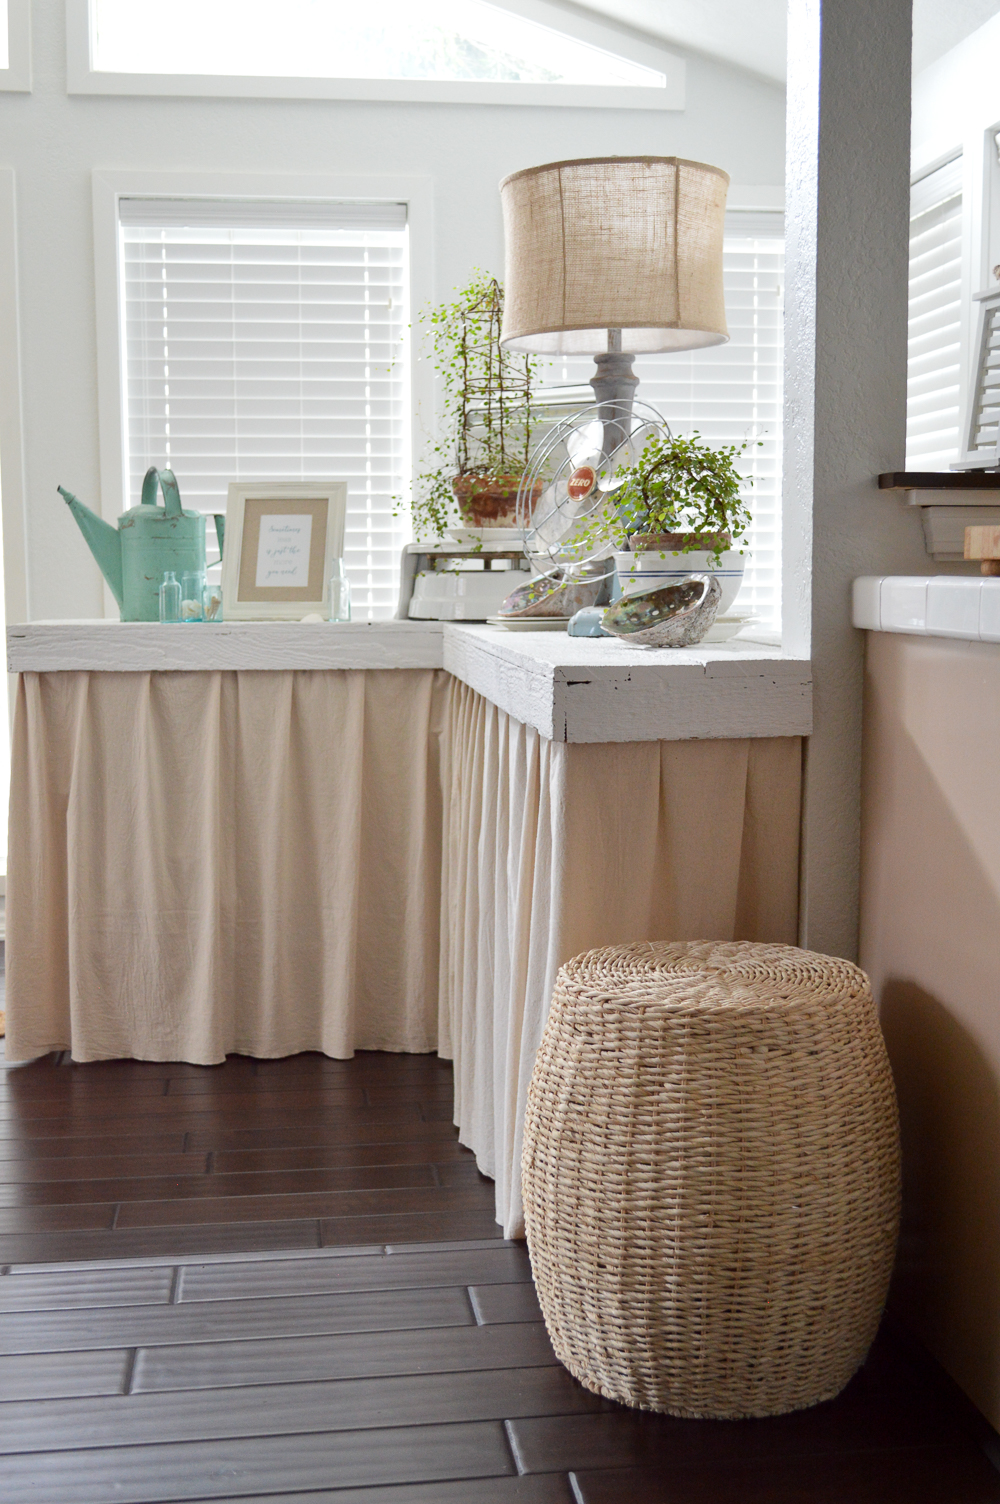 DIY laminate bar makeover with drop cloth hidden storage.